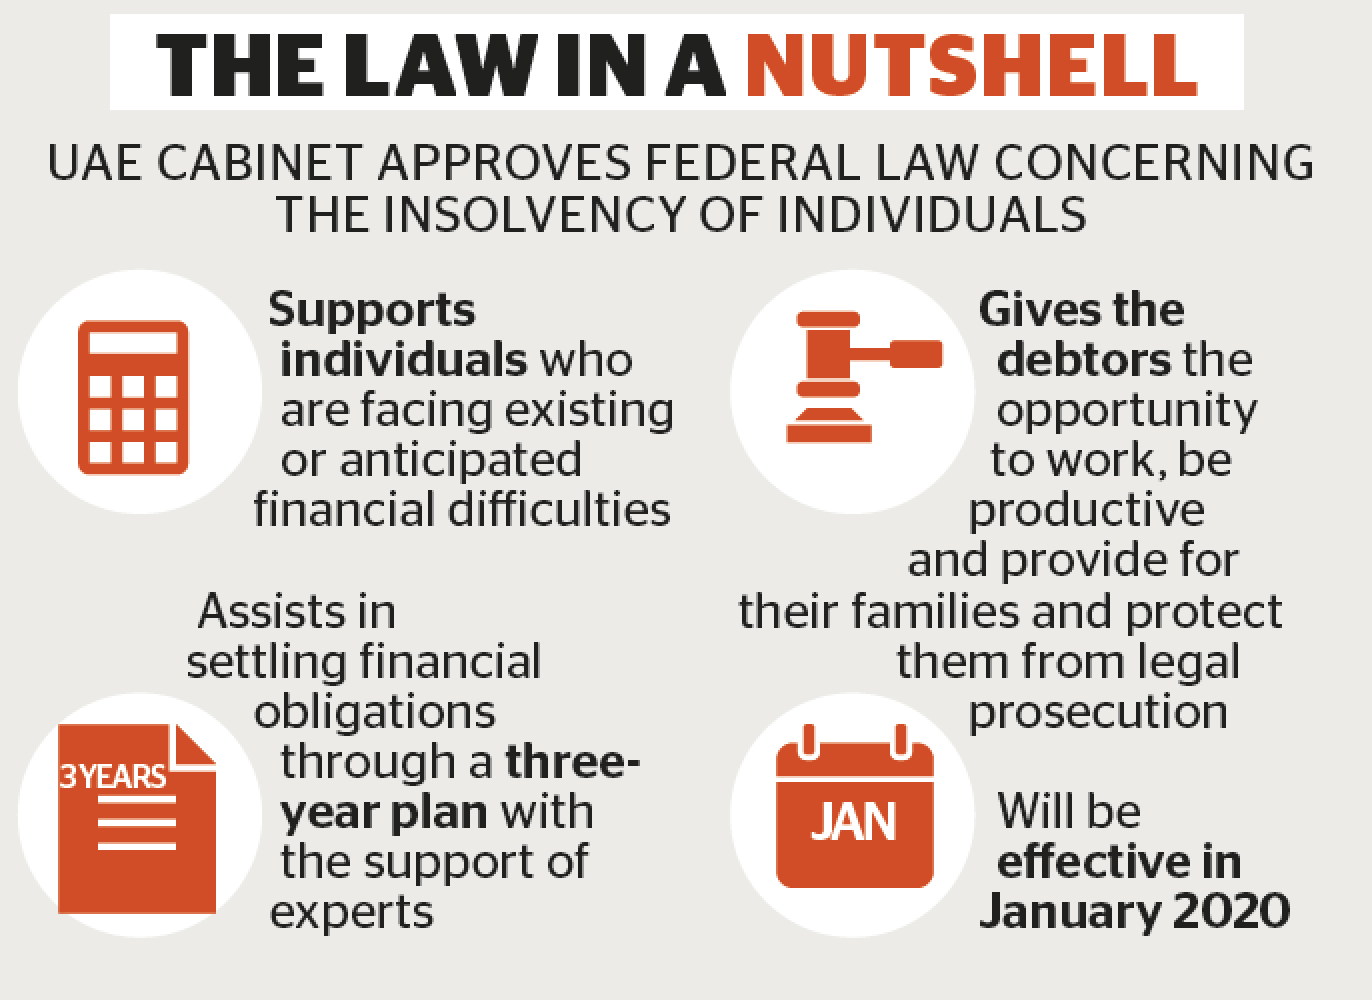 Explained: New UAE law that protects debt-ridden residents (https://pbs.twimg.com/media/EJu9hicWsAAJFCE?format=png&name=large)